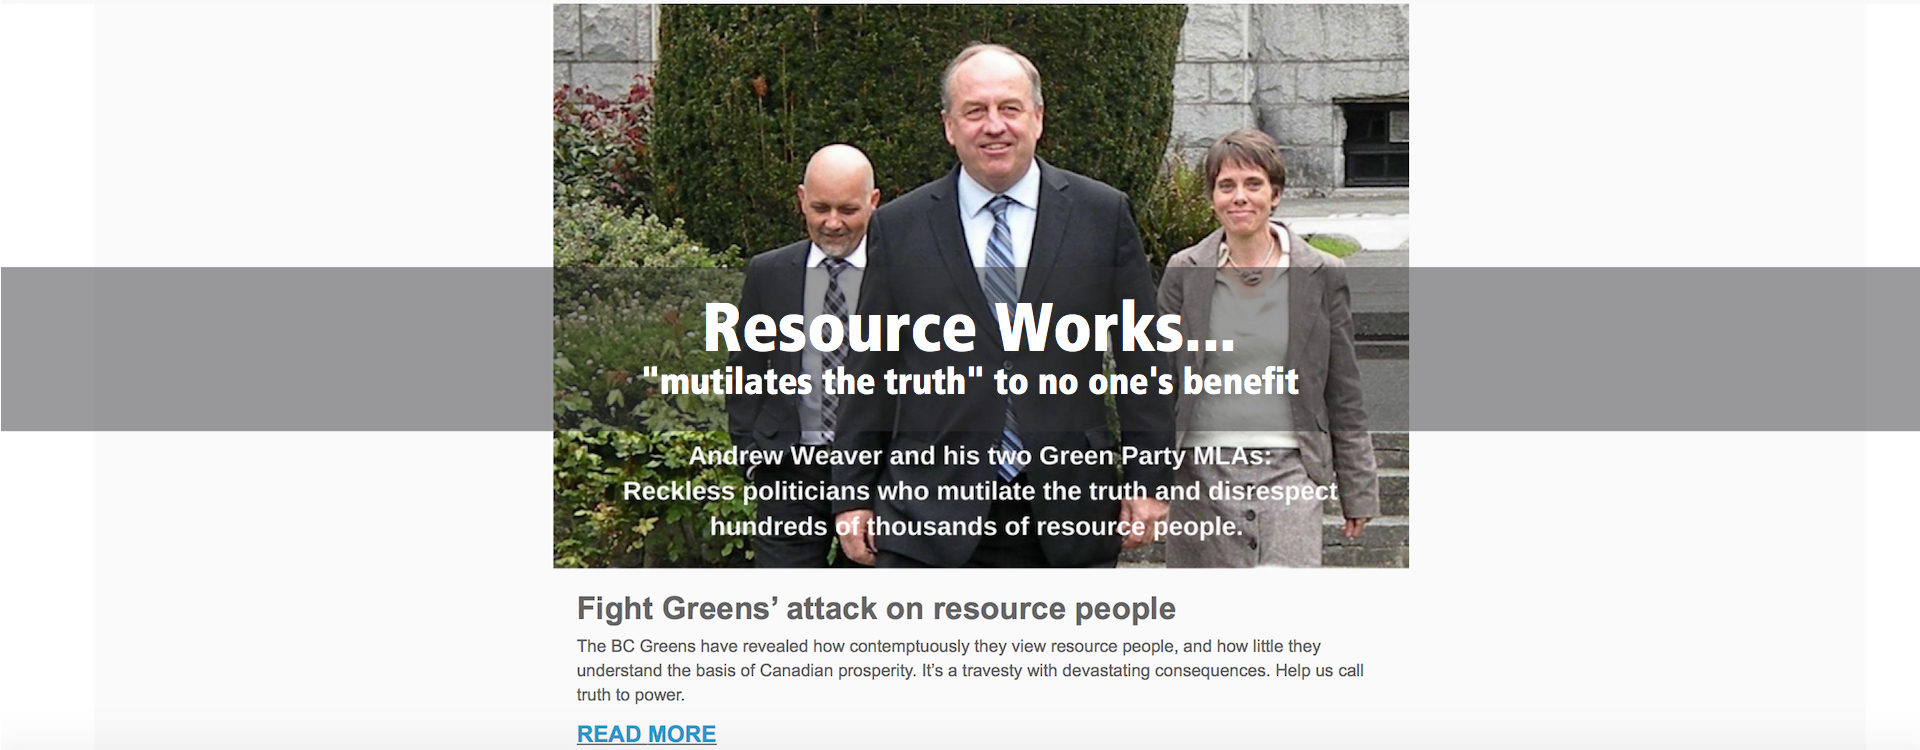 """Resource Works """"mutilates the truth"""" to no one's benefit"""